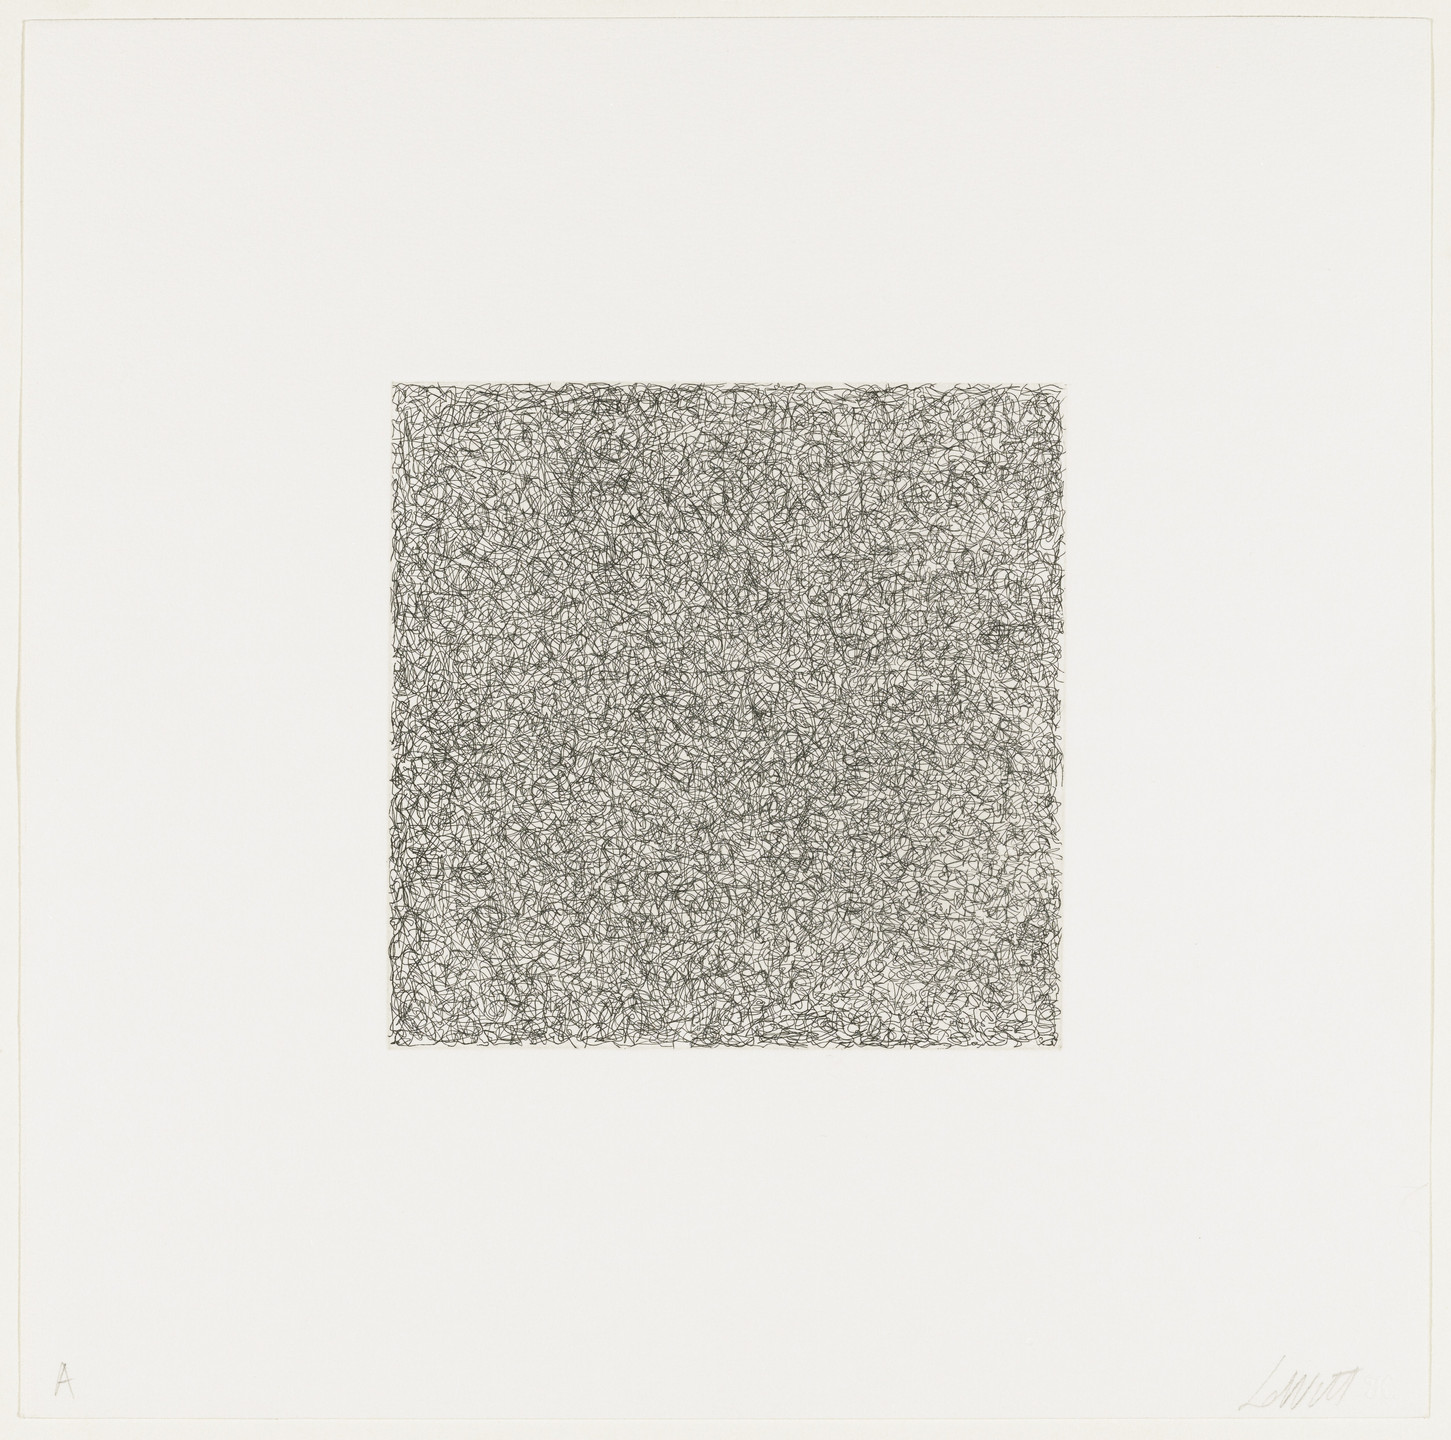 Sol LeWitt. Scribbles Printed in Four Directions Using Four Colors. 1971